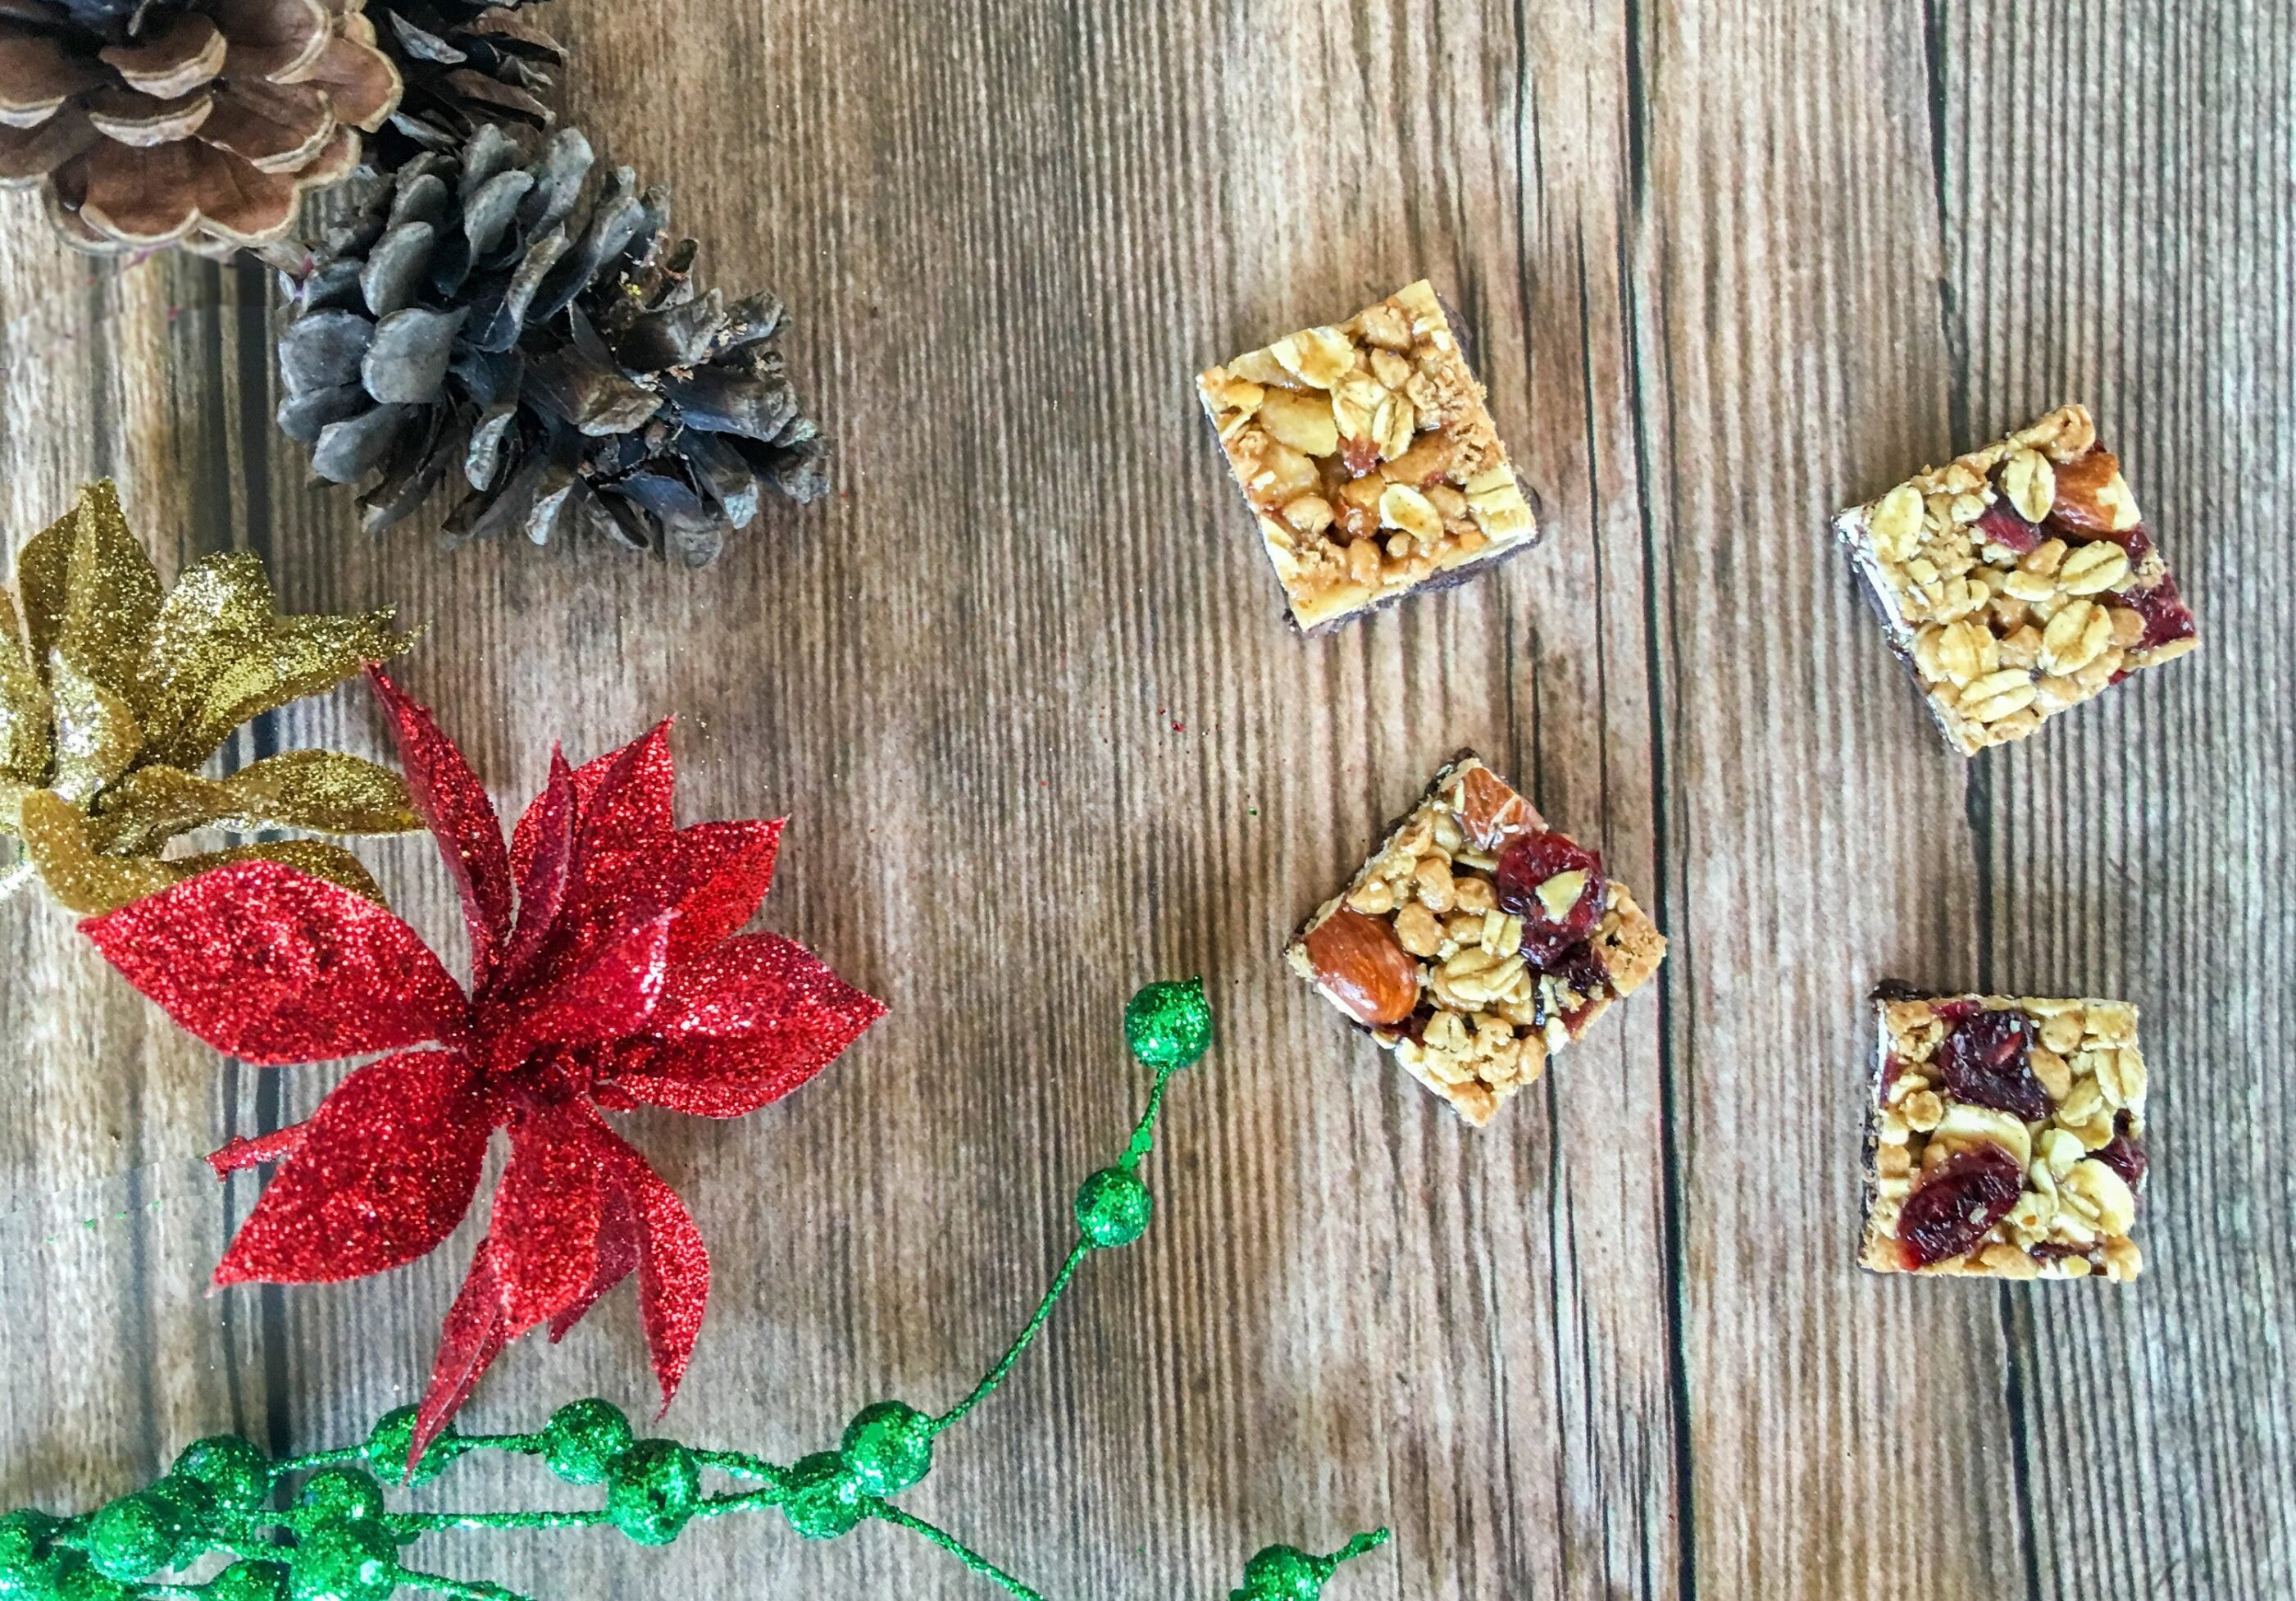 Learn how to snack smartly during the holiday season.